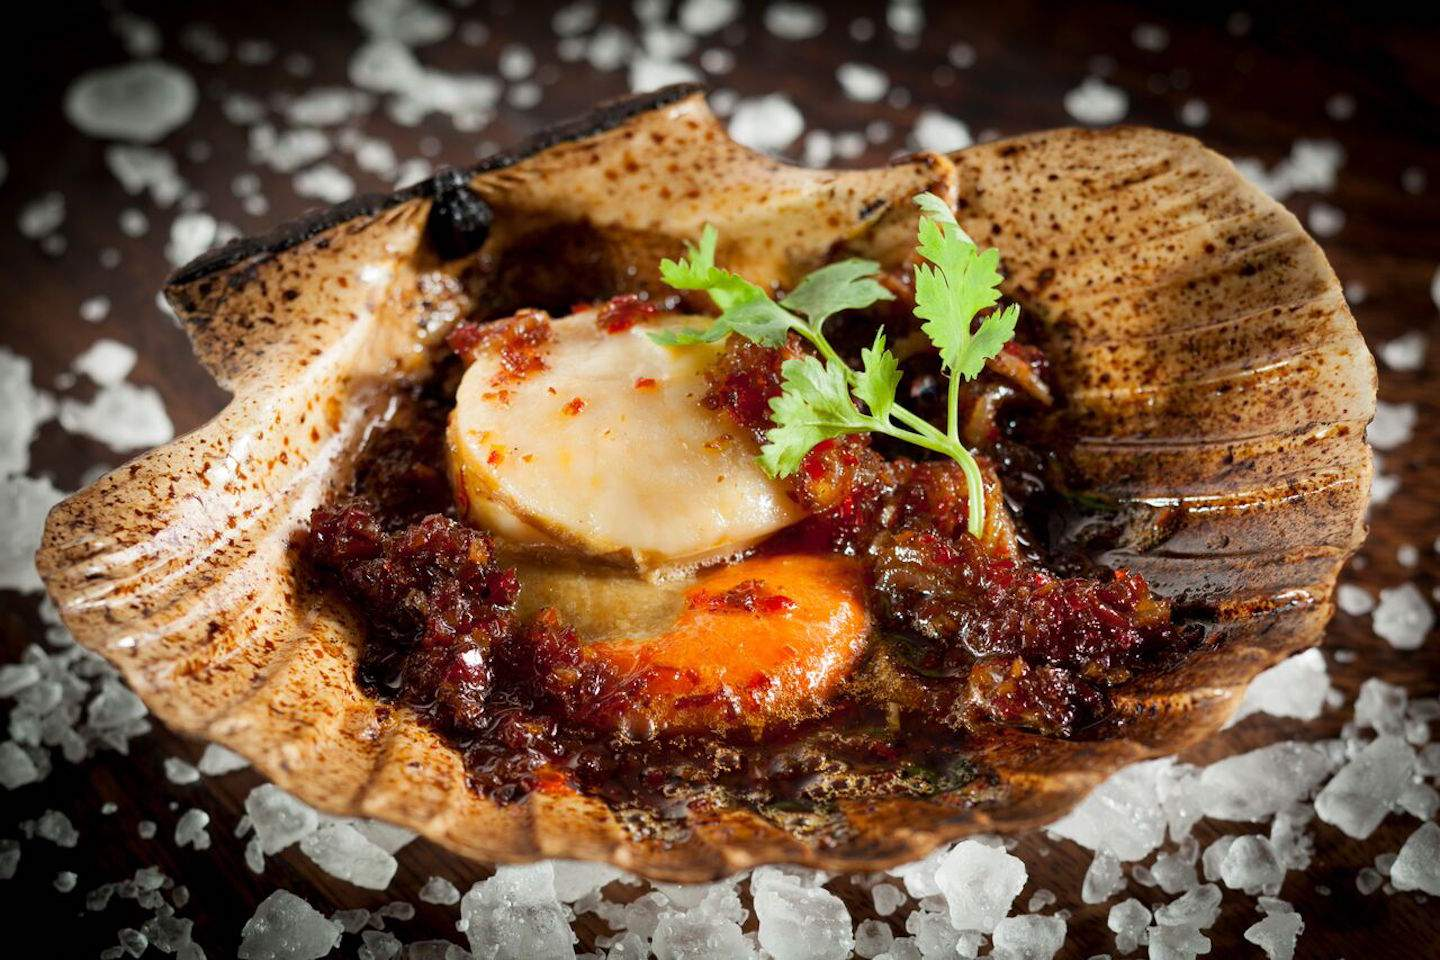 A grilled scallop dish from Burnt Ends. The restaurant has chosen to do away with prawns on its menu as prawn-farming is increasingly associated with the destruction of mangrove areas, coastal pollution, salinisation, and other detriments to the environment.